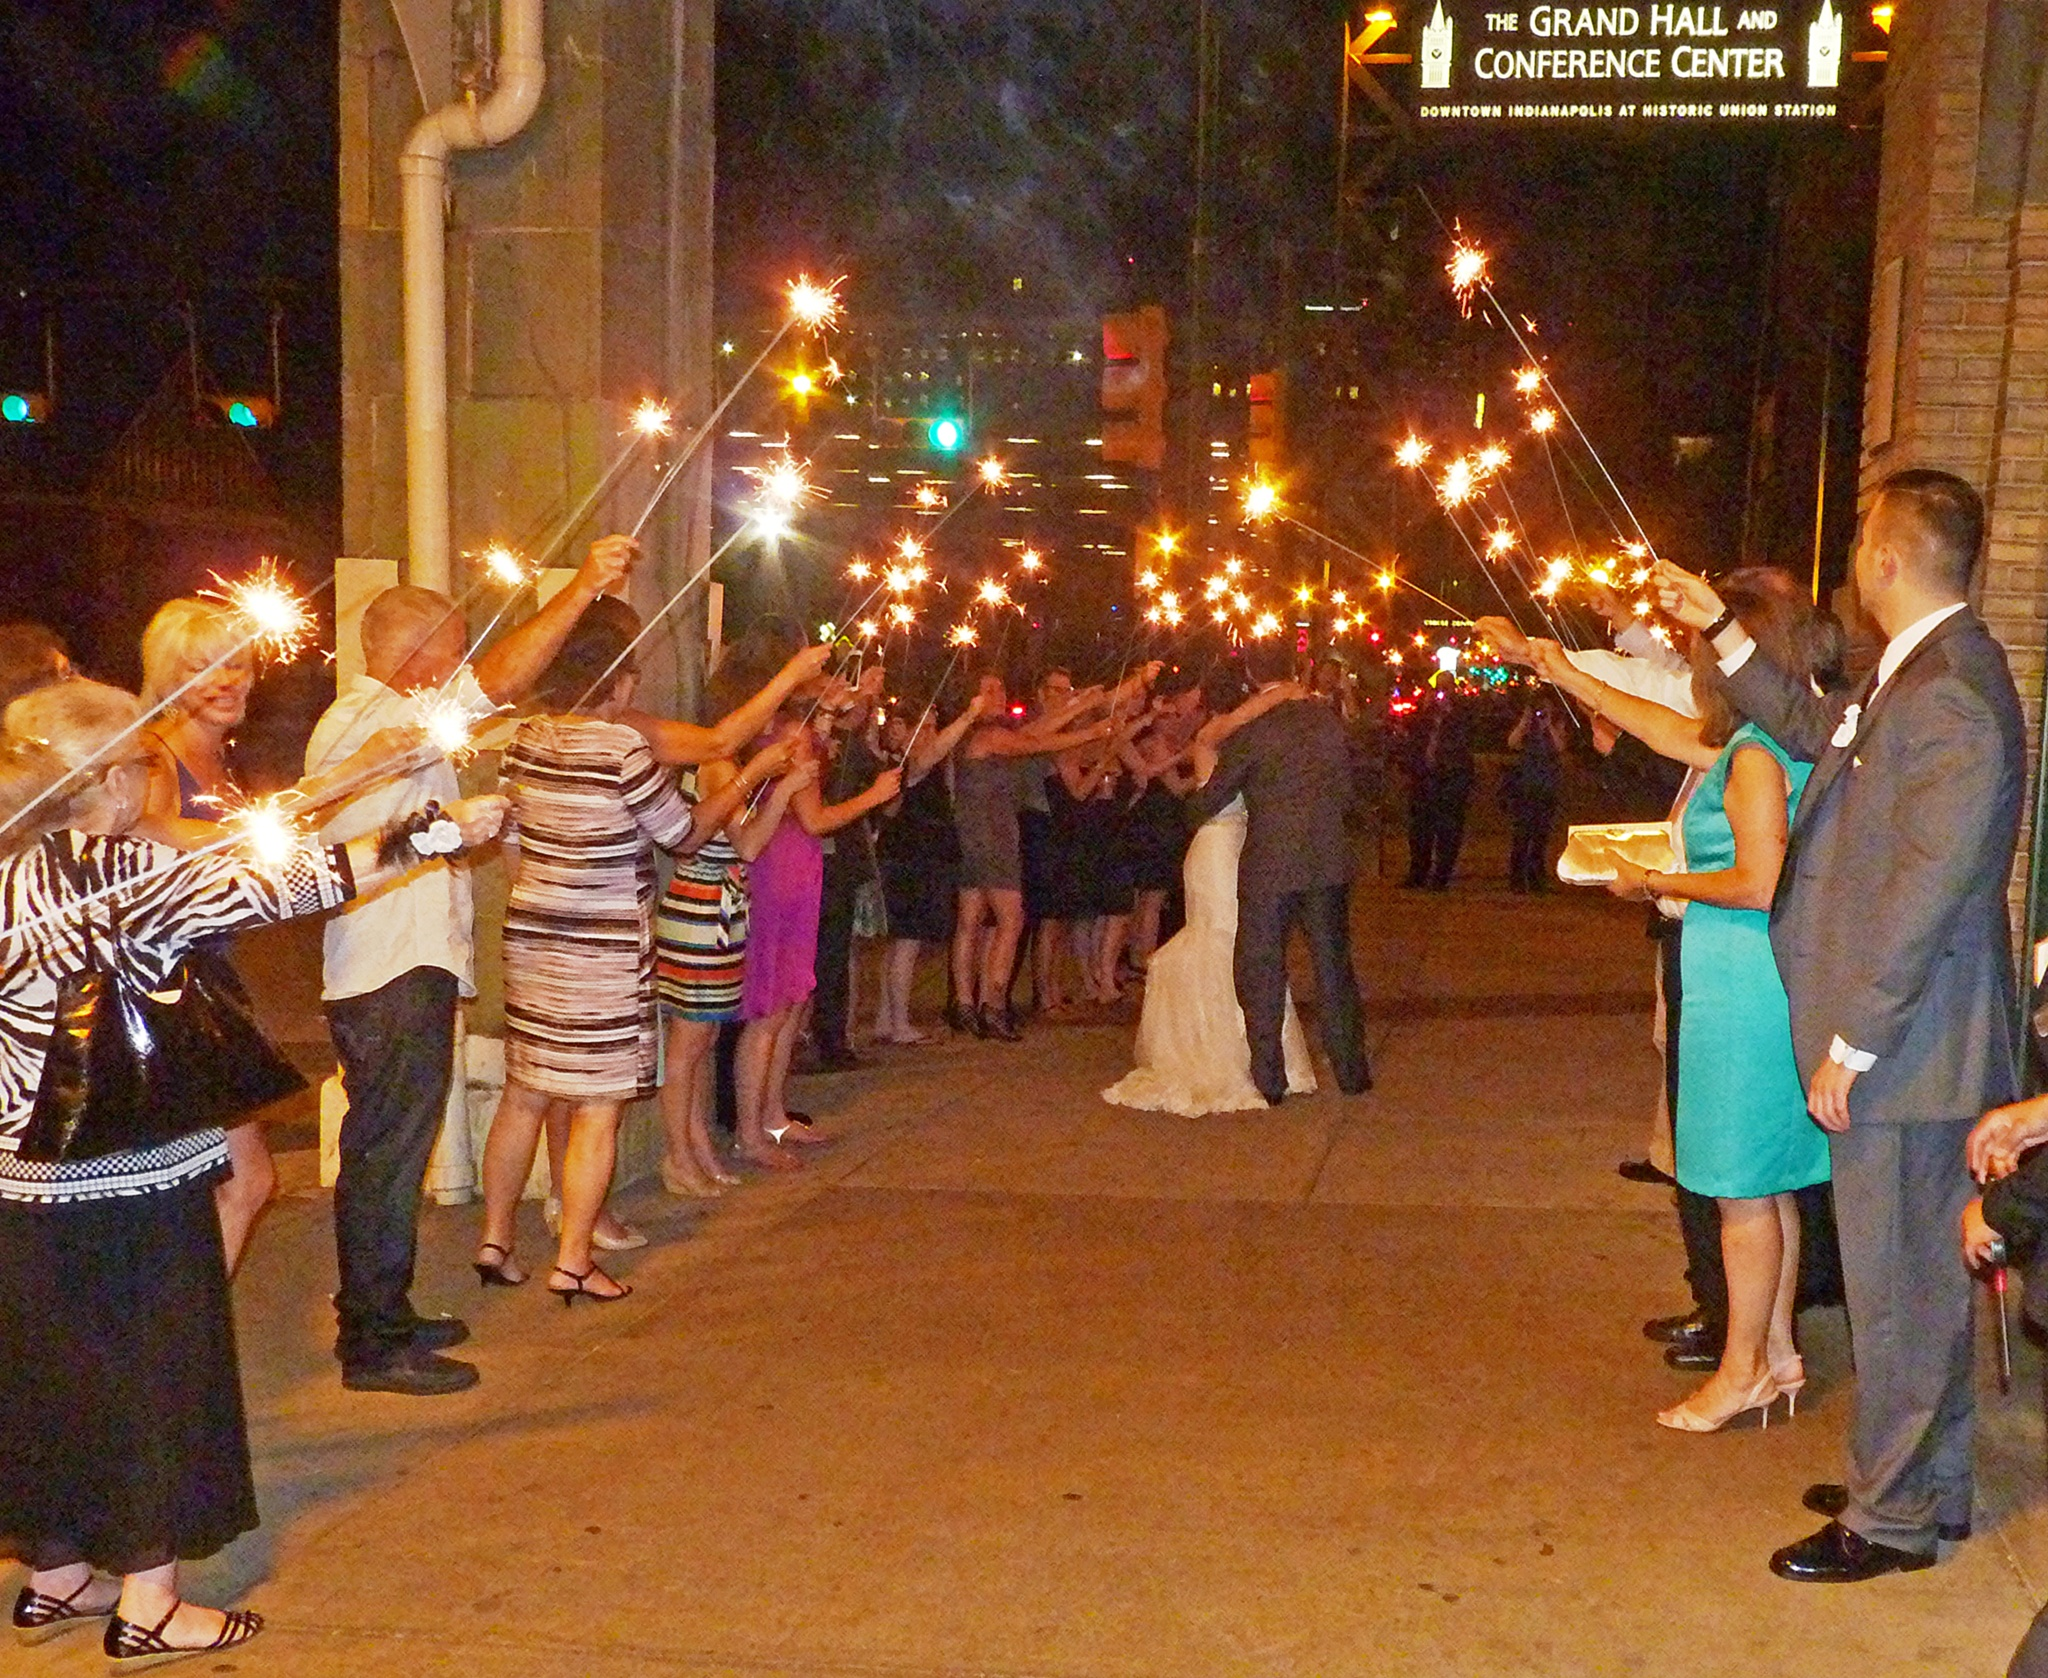 Grand Send-Off for the Bride and Groom by jeanne.winstead